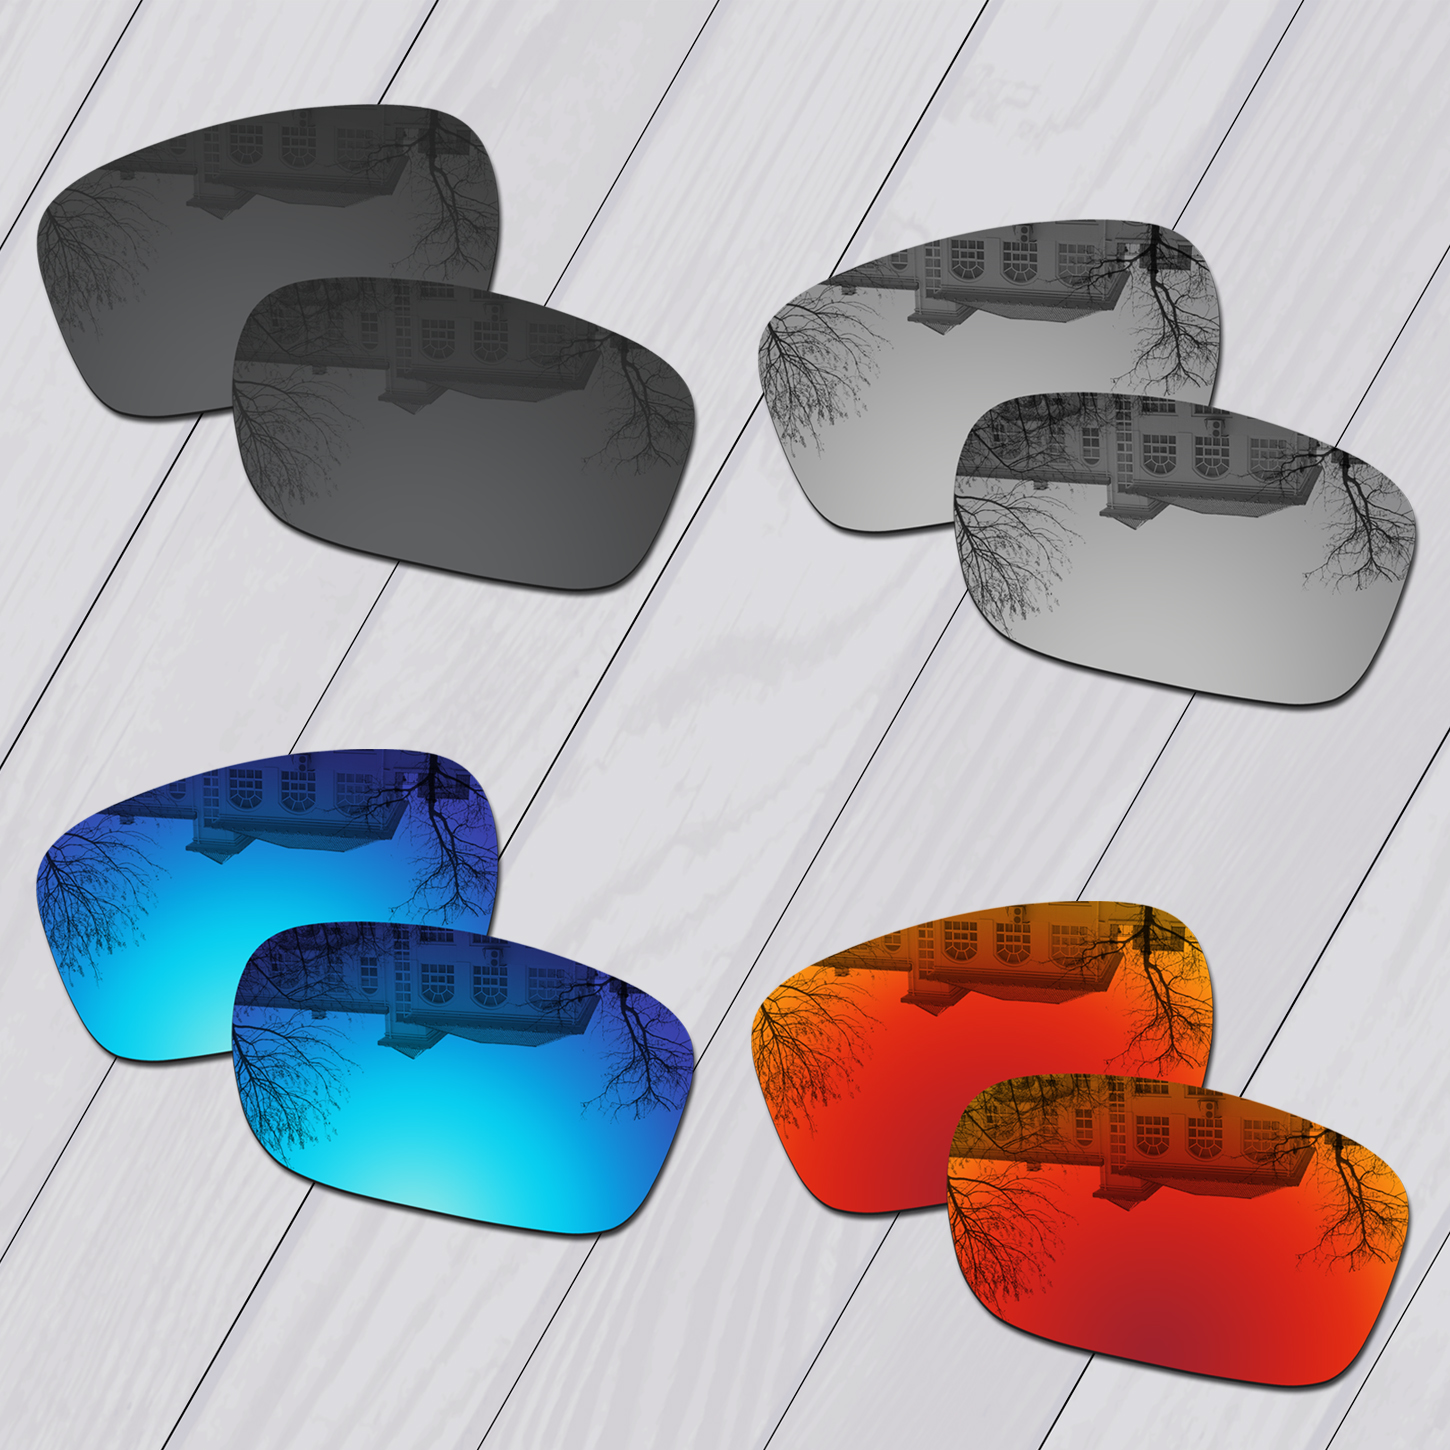 E.O.S 4 Pairs Black & Silver & Ice Blue & Fire Red Polarized ReplacementLensesforOakleyMainlink Sunglasses